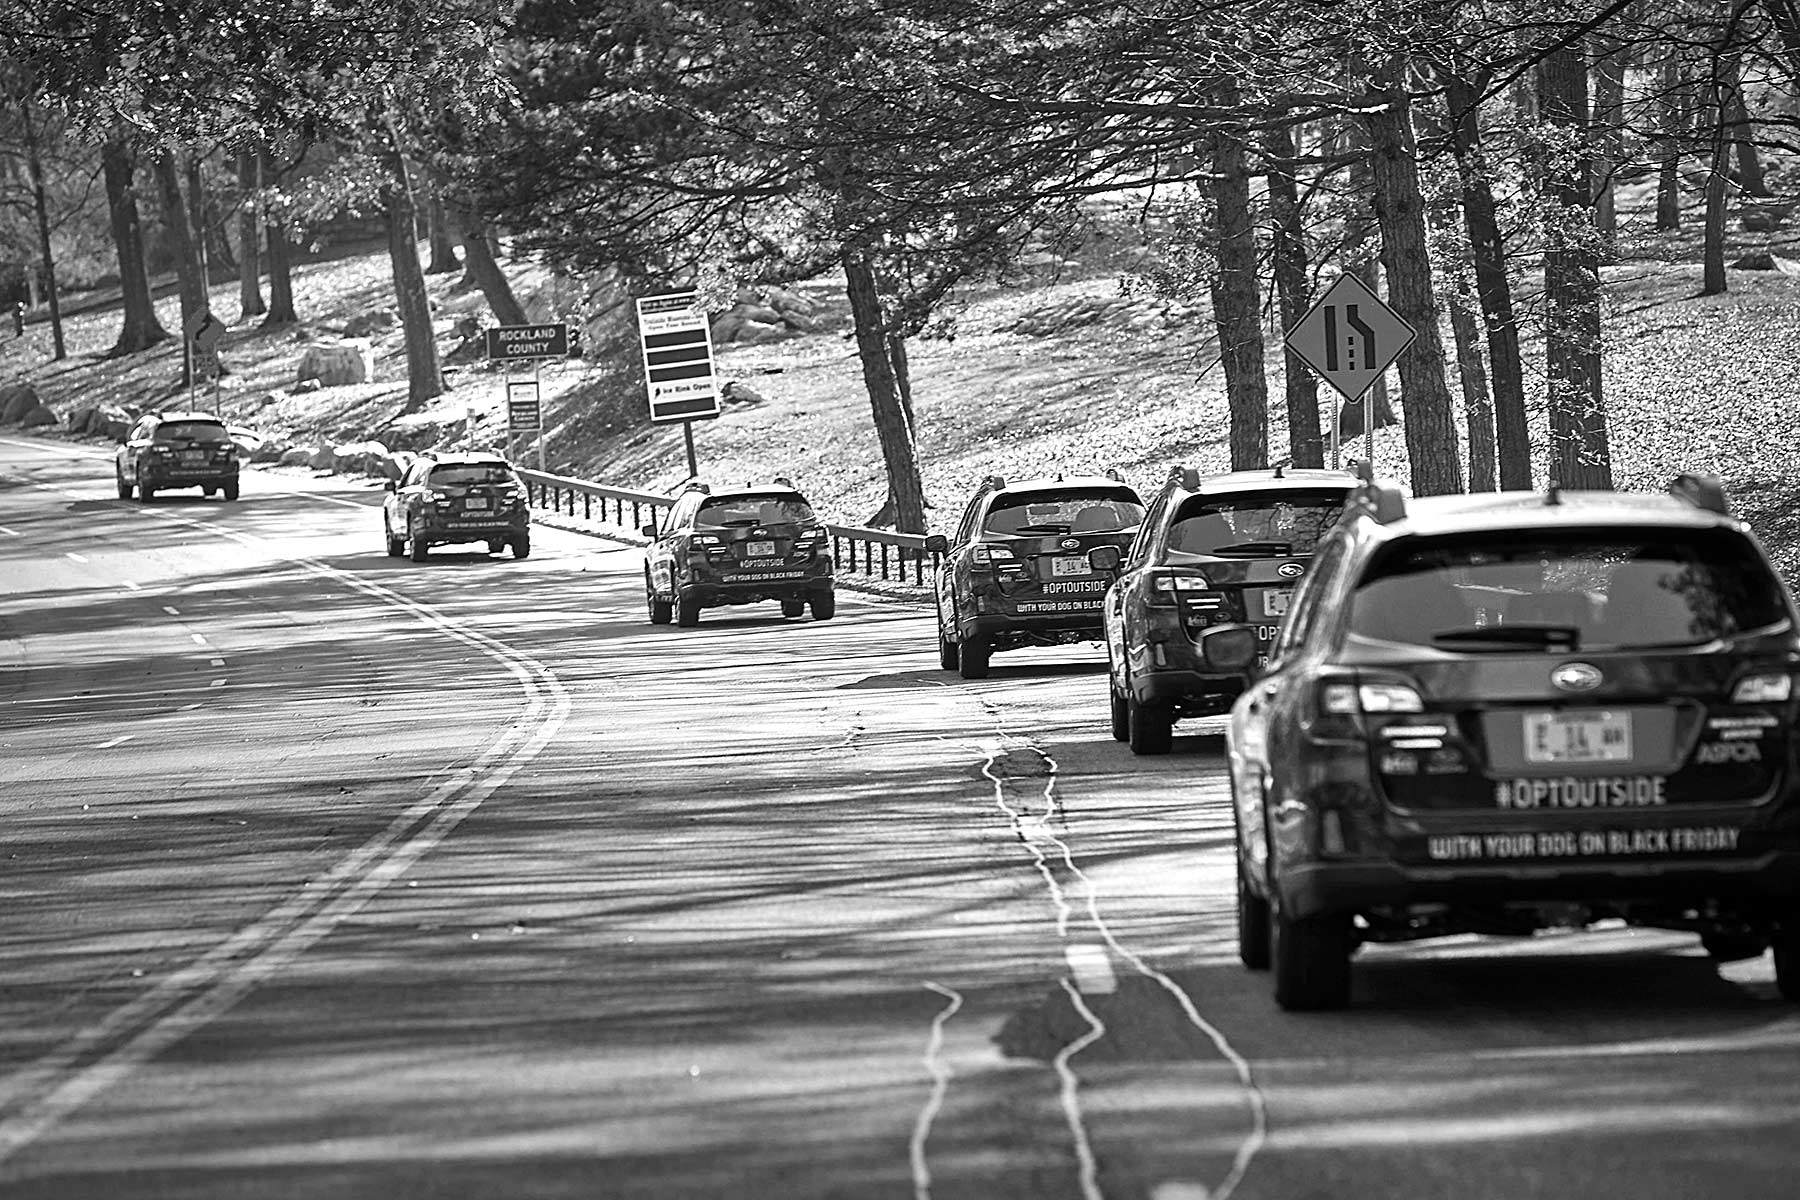 The fleet of Outbacks entering Bear Mountain State park in Upstate NY.